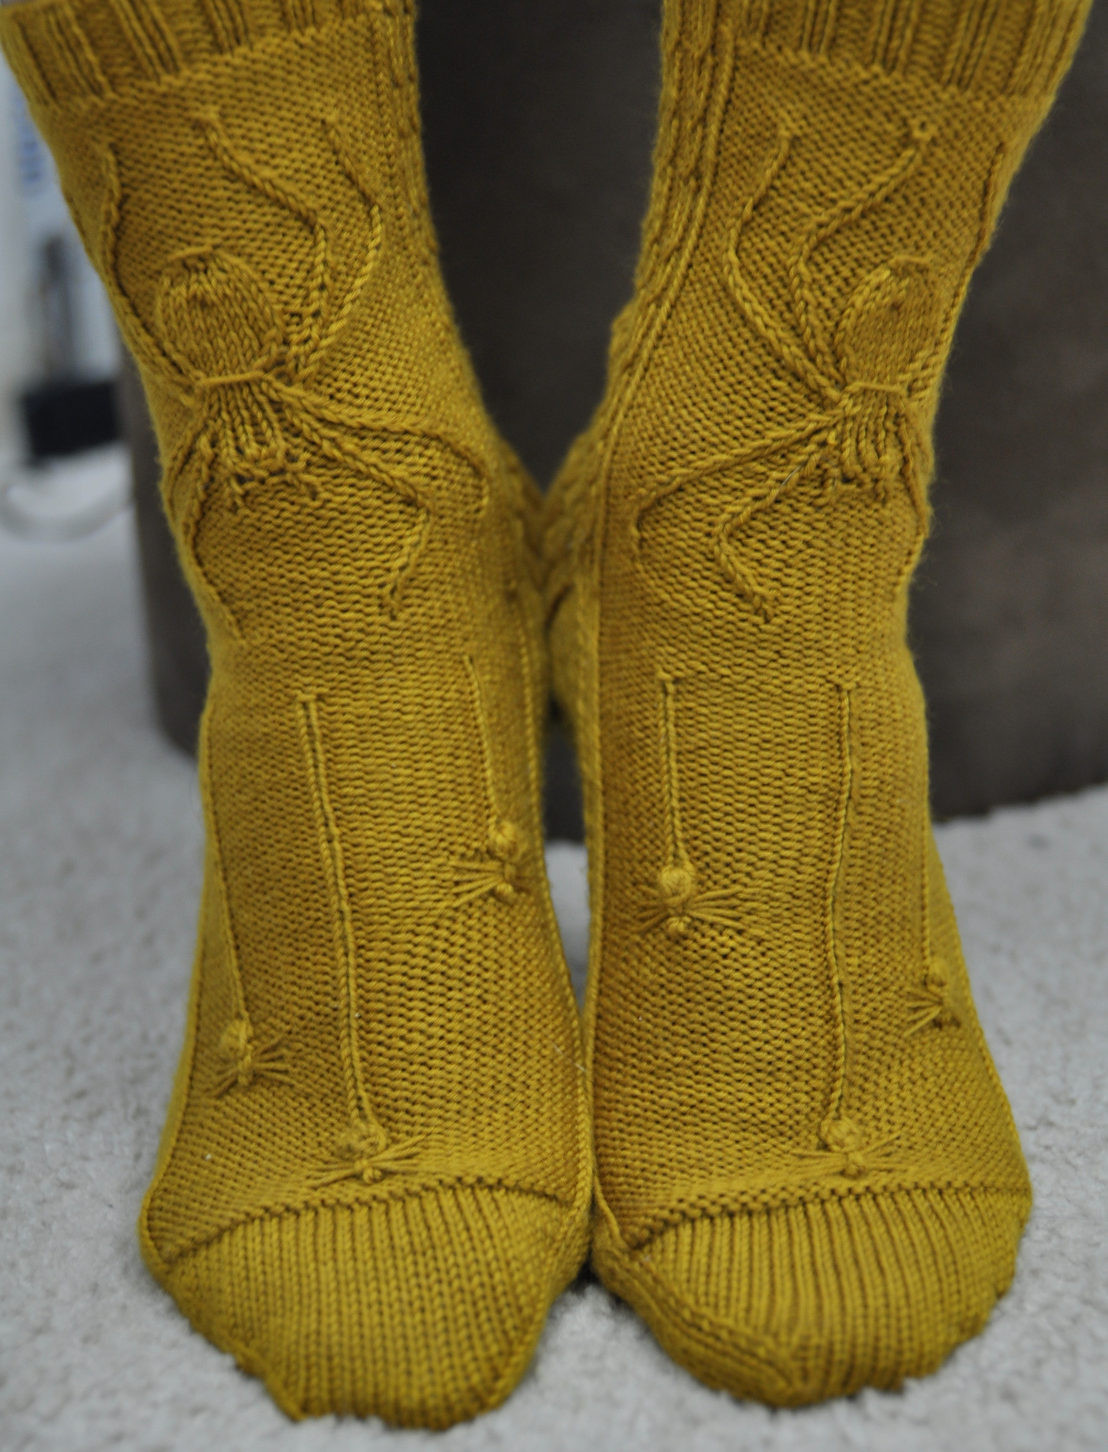 Knitting socks Best Of Cable Creatures Knitting Patterns Of Gorgeous 44 Pictures Knitting socks